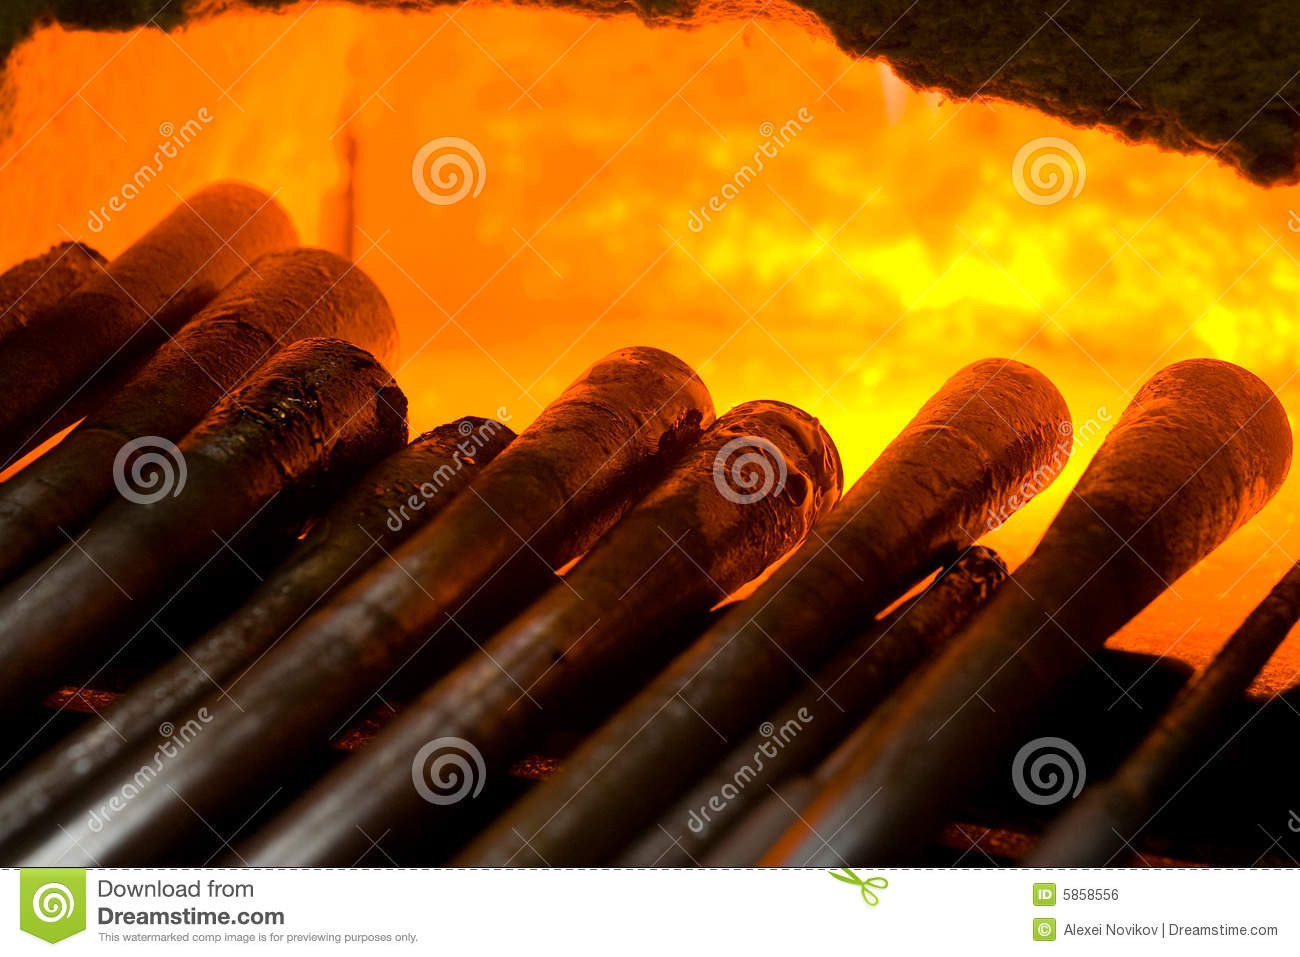 burnt orange glass vase of glass blowing pipes in a furnace stock photo image of blowing with regard to download glass blowing pipes in a furnace stock photo image of blowing crystal